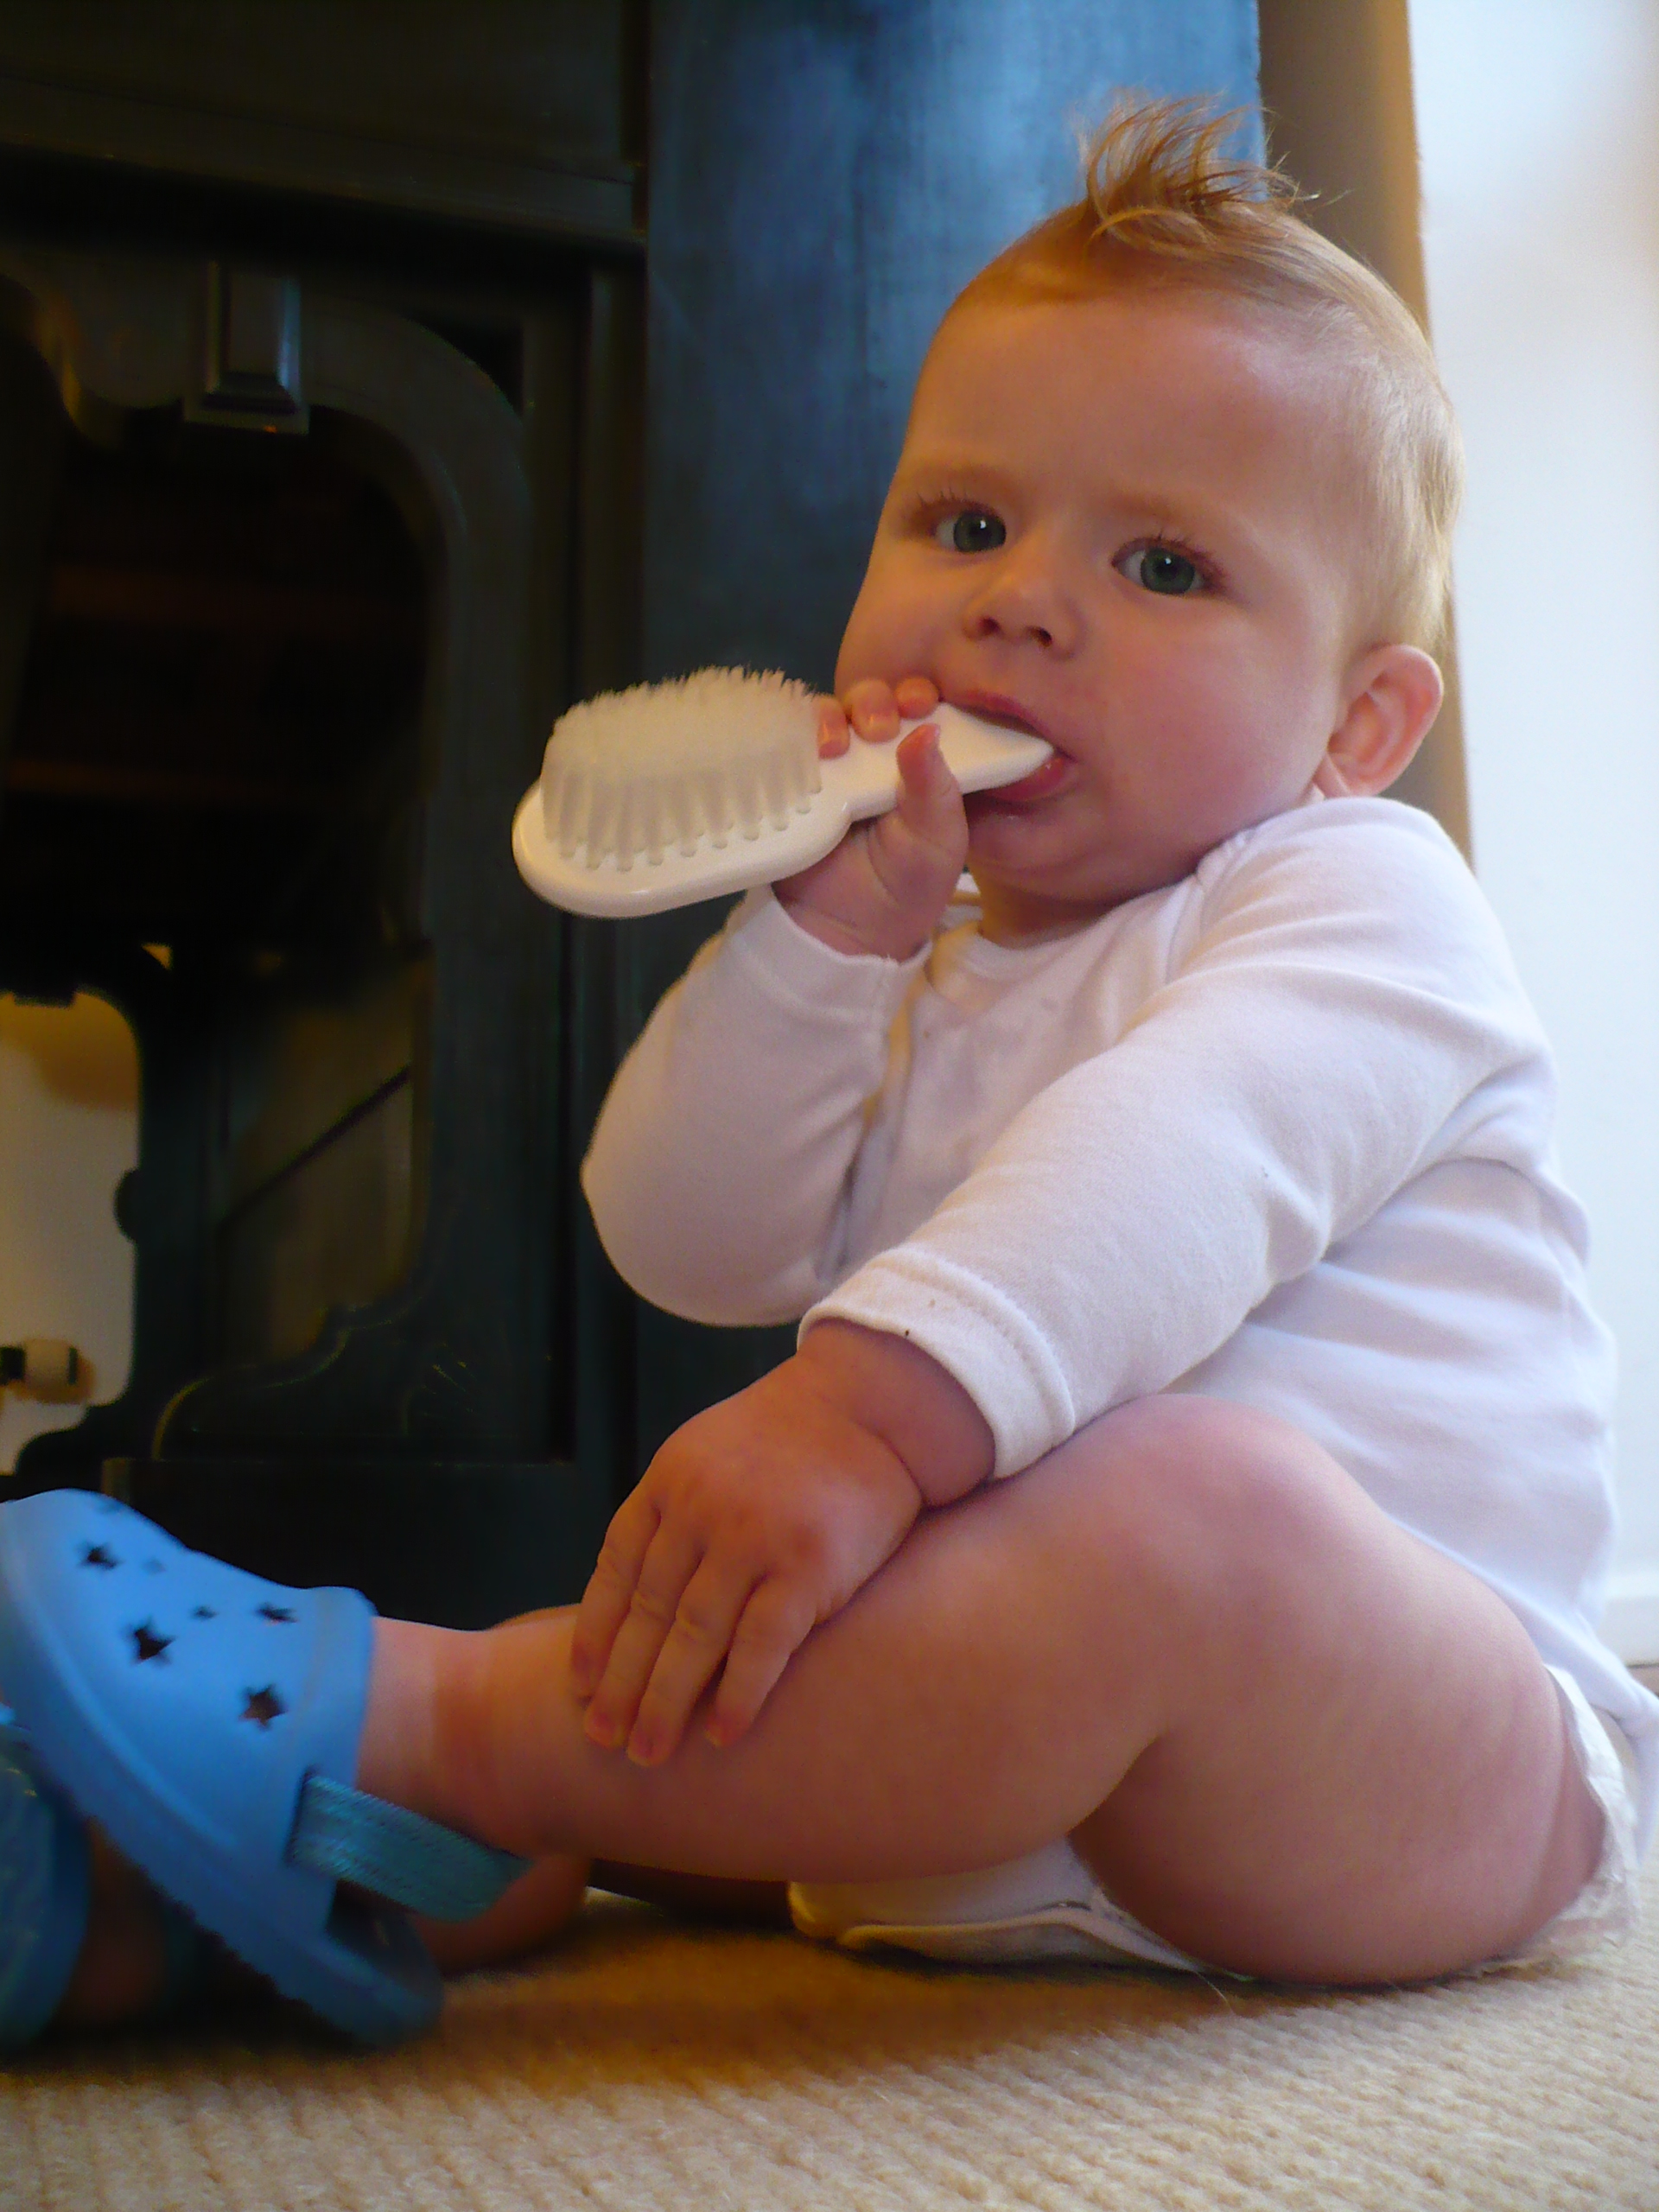 Stokke Newborn Seat Review Mothercare Crocs Baby Genie